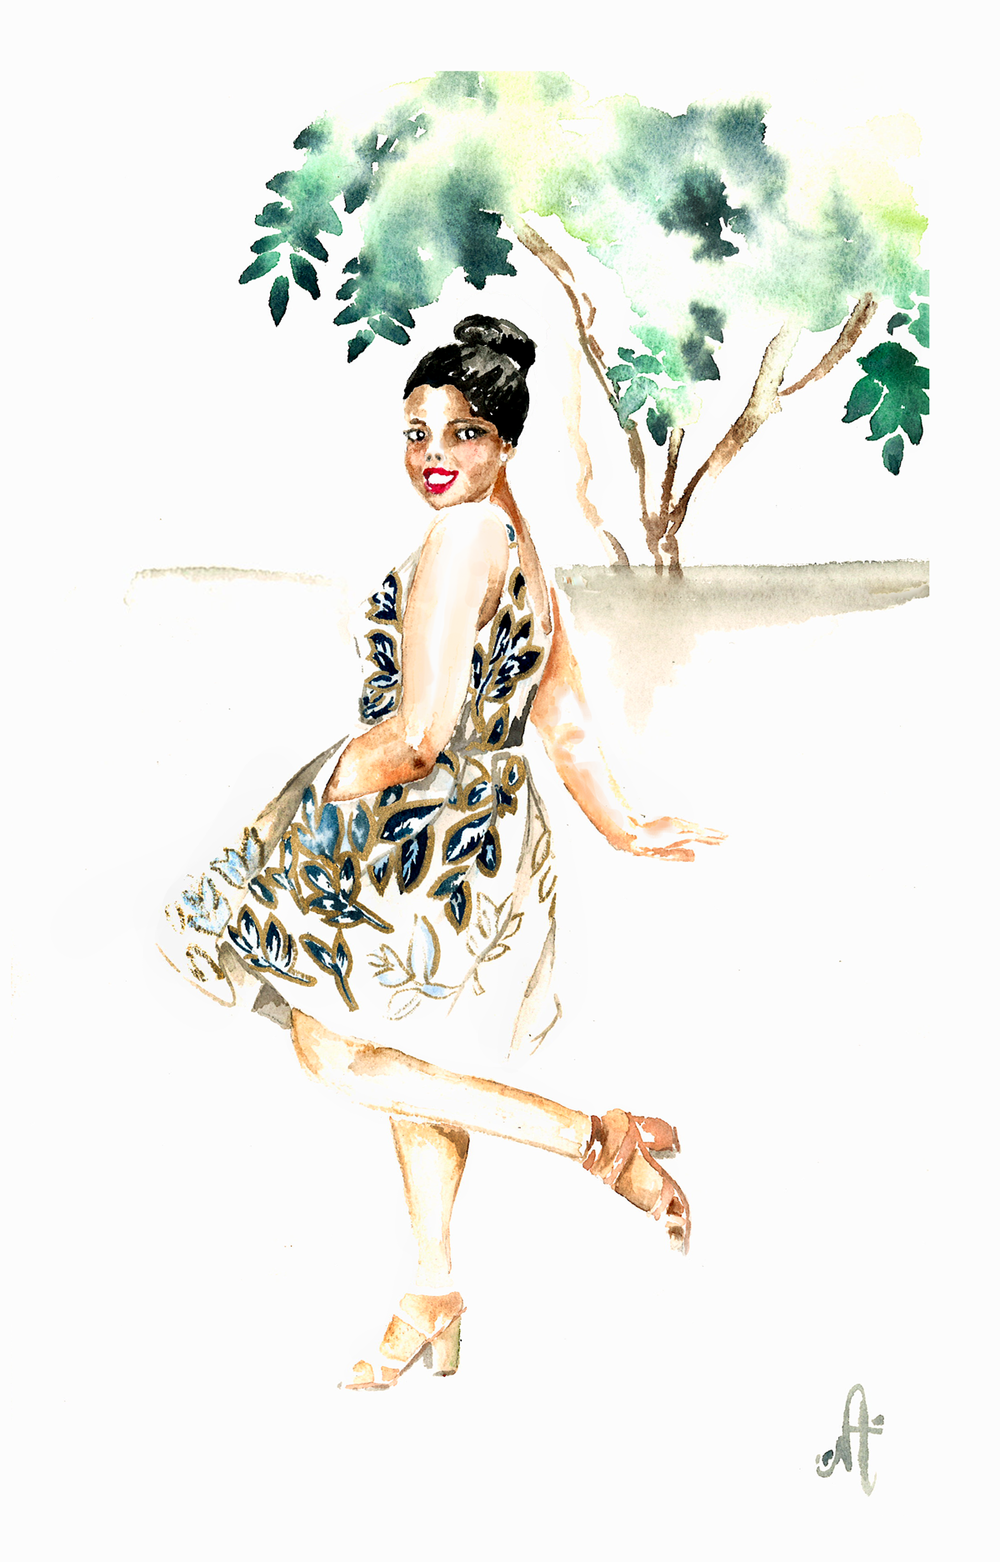 Jcrew Linen Zip Front Dress Gold Foil Leaf Jcrew Buckle Mid Heel Jcrew Factory Chain Link Bracelet Stilla all day Liquid Lipstick That Hayet Rida Plus SIze Blogger Fashion Illustration Nelly Aba Mensah.png